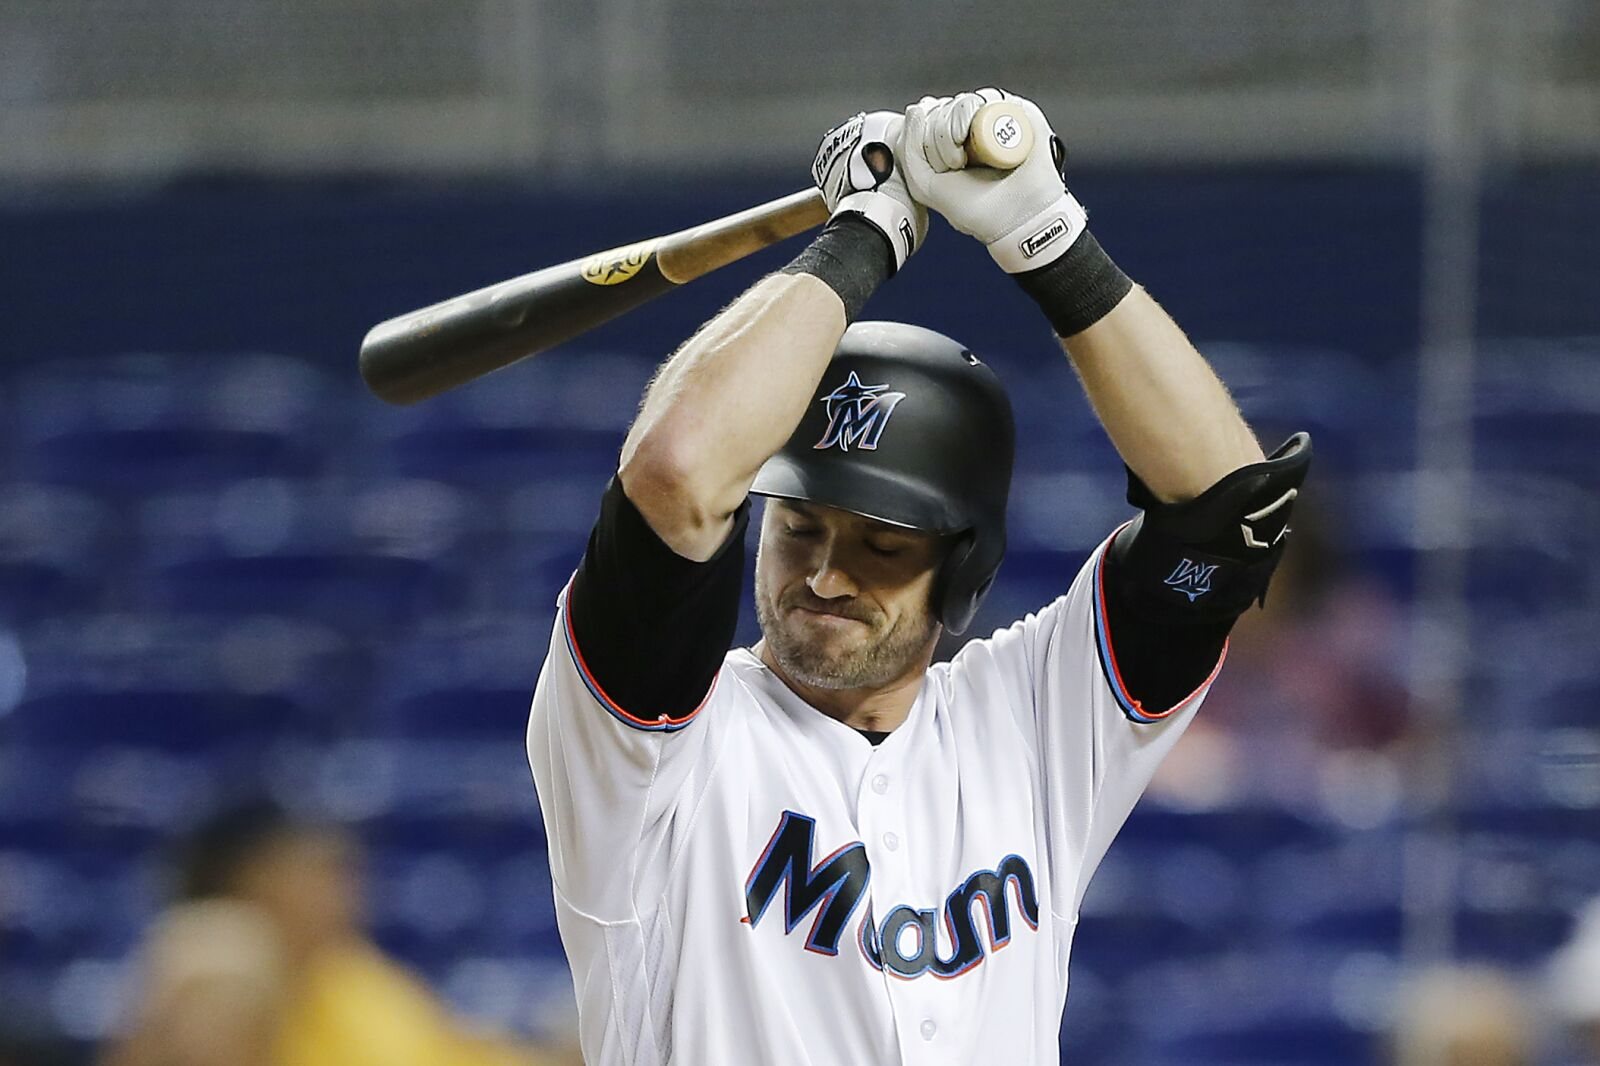 Marlins continue to search for answers after another shutout loss